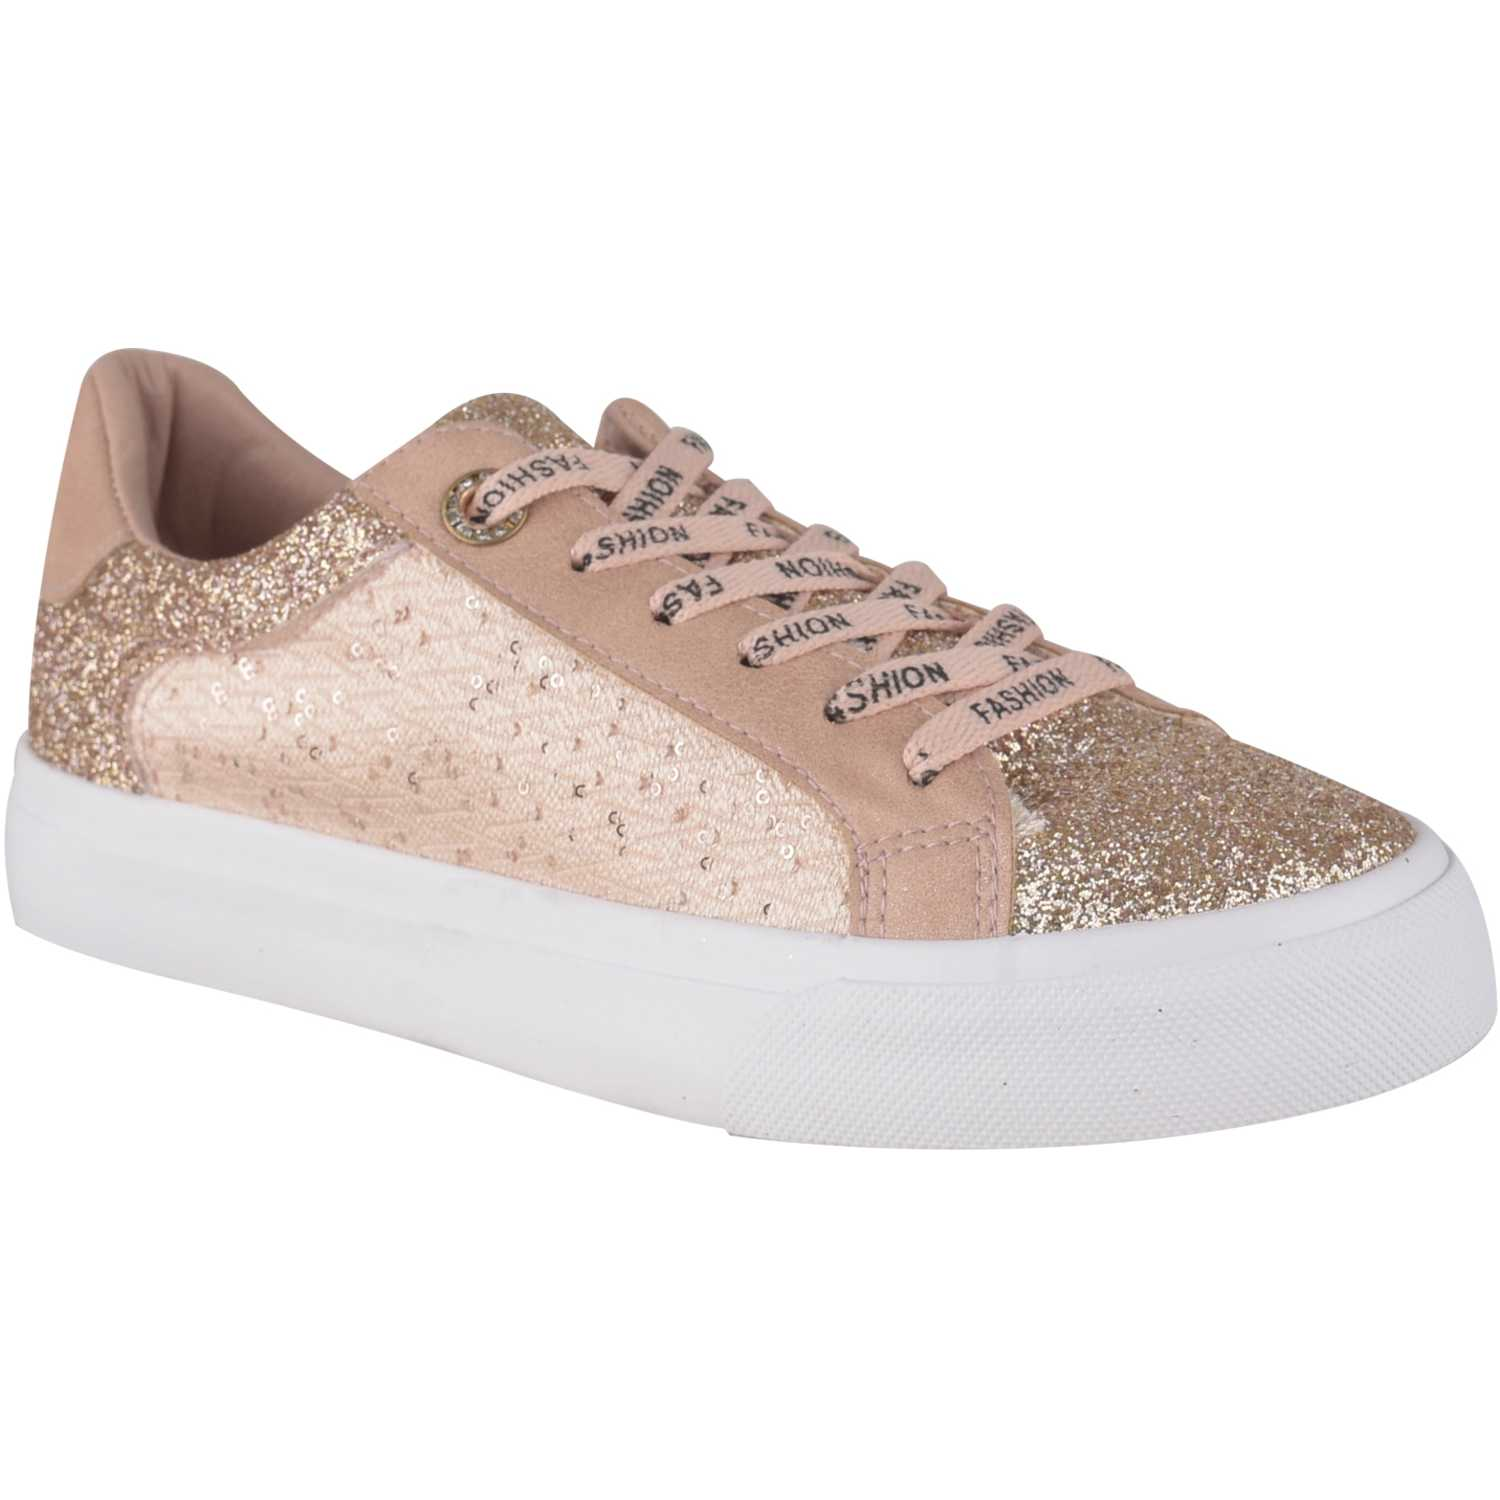 Platanitos zc 3169 Rosado Zapatillas Fashion